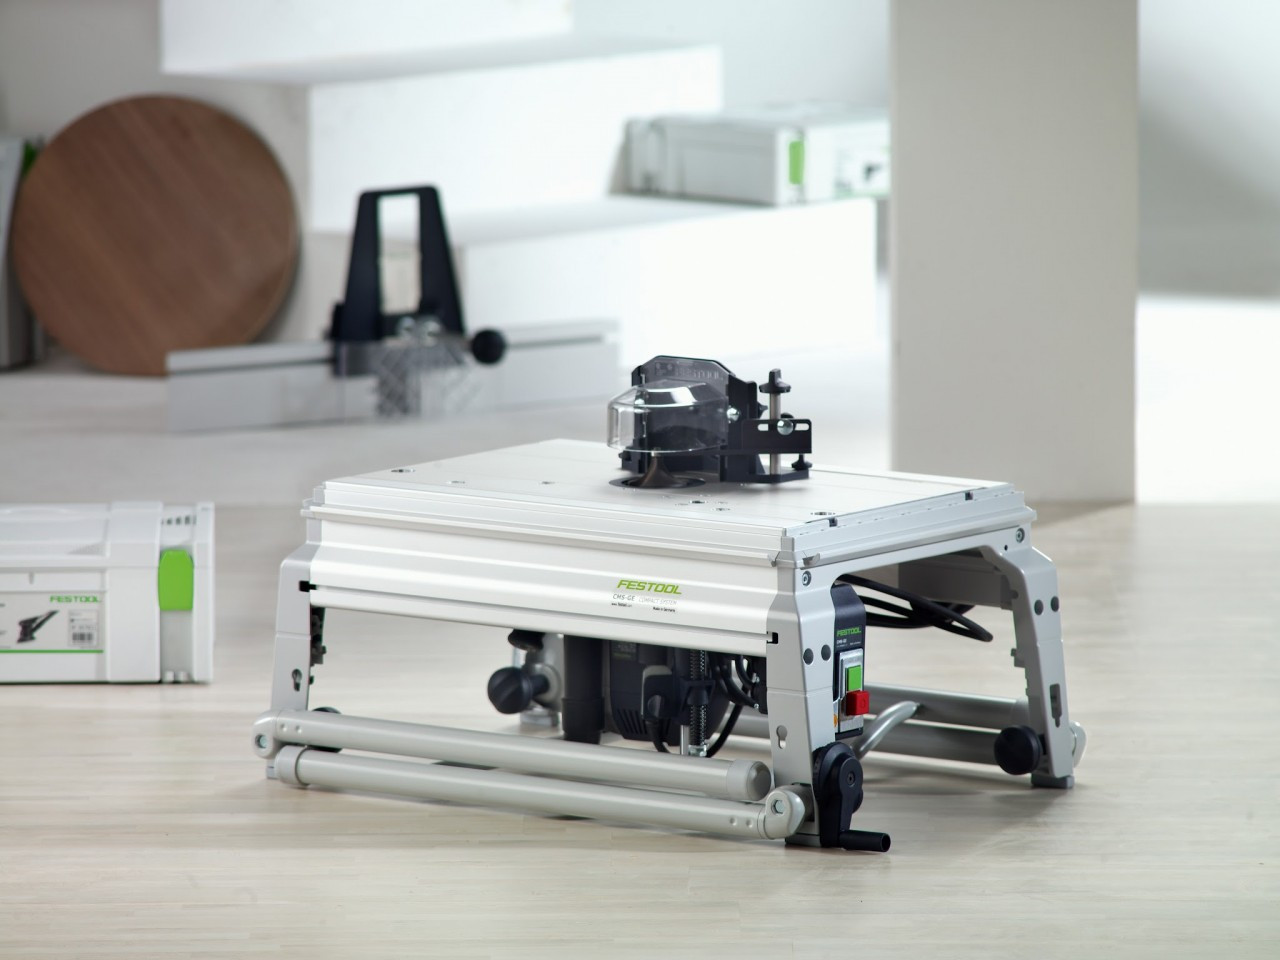 Festool cms ge router table basic 203159 replaces 57000027 greentooth Images